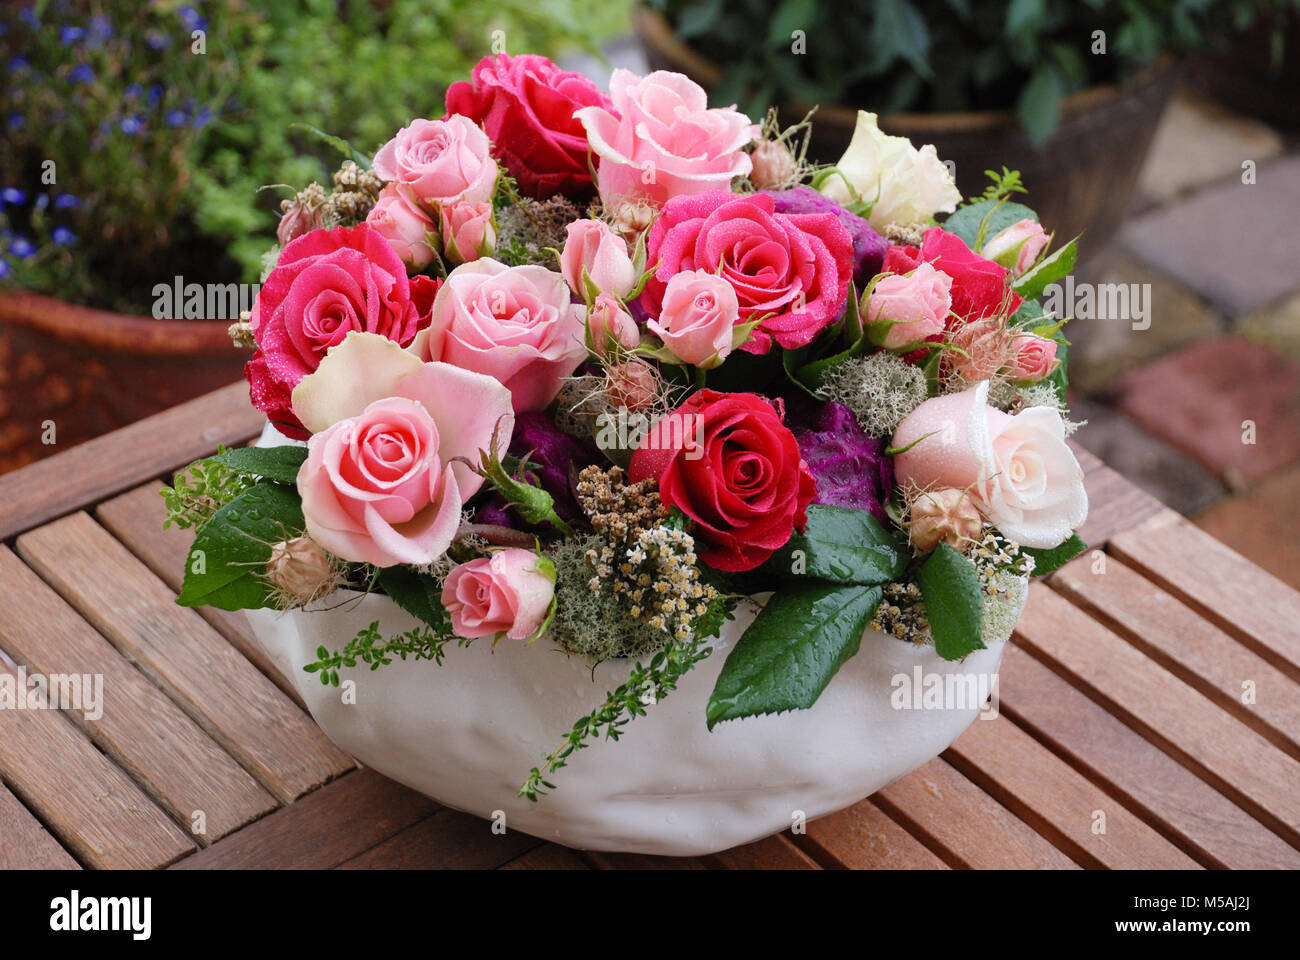 Luxury bouquet made of red white pink roses in flower shop stock luxury bouquet made of red white pink roses in flower shop birthday mothers valentines womens wedding day concept izmirmasajfo Choice Image